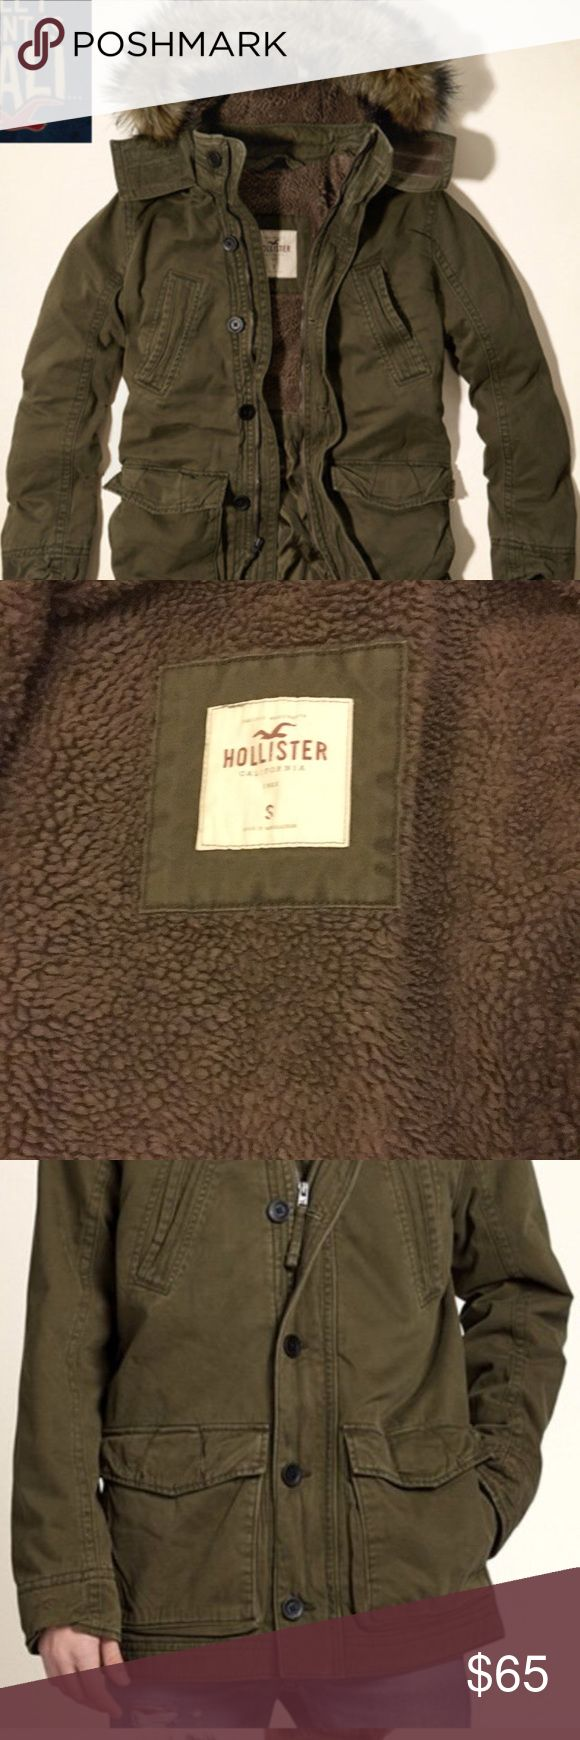 HOLLISTER CO. Parka men's jacket fur hood HOLLISTER CO. Sherpa-Lined Parka men's zip up outer jacket fur hood olive. Men's SMALL  Worn less than 5 times! Washed once. Fur Trim washed by hand. Hollister Jackets & Coats